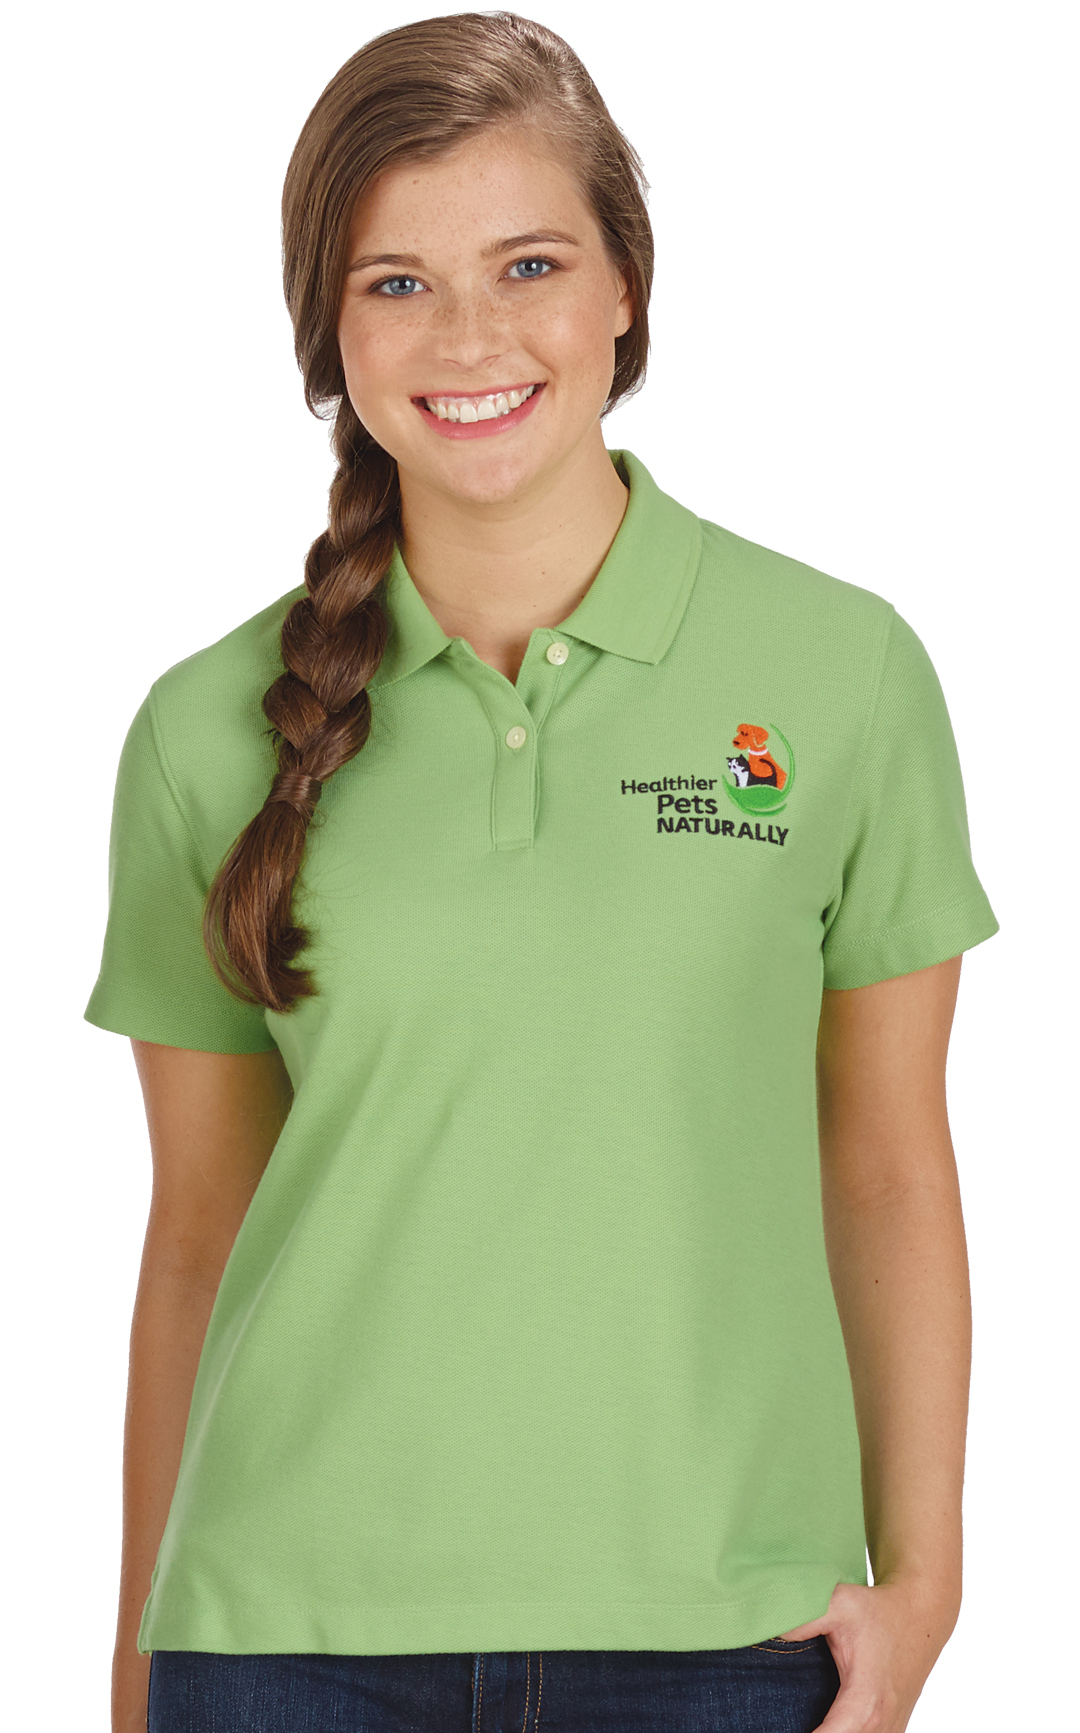 Casual Polo Shirts By Veterinary Apparel Company Veterinary Apparel